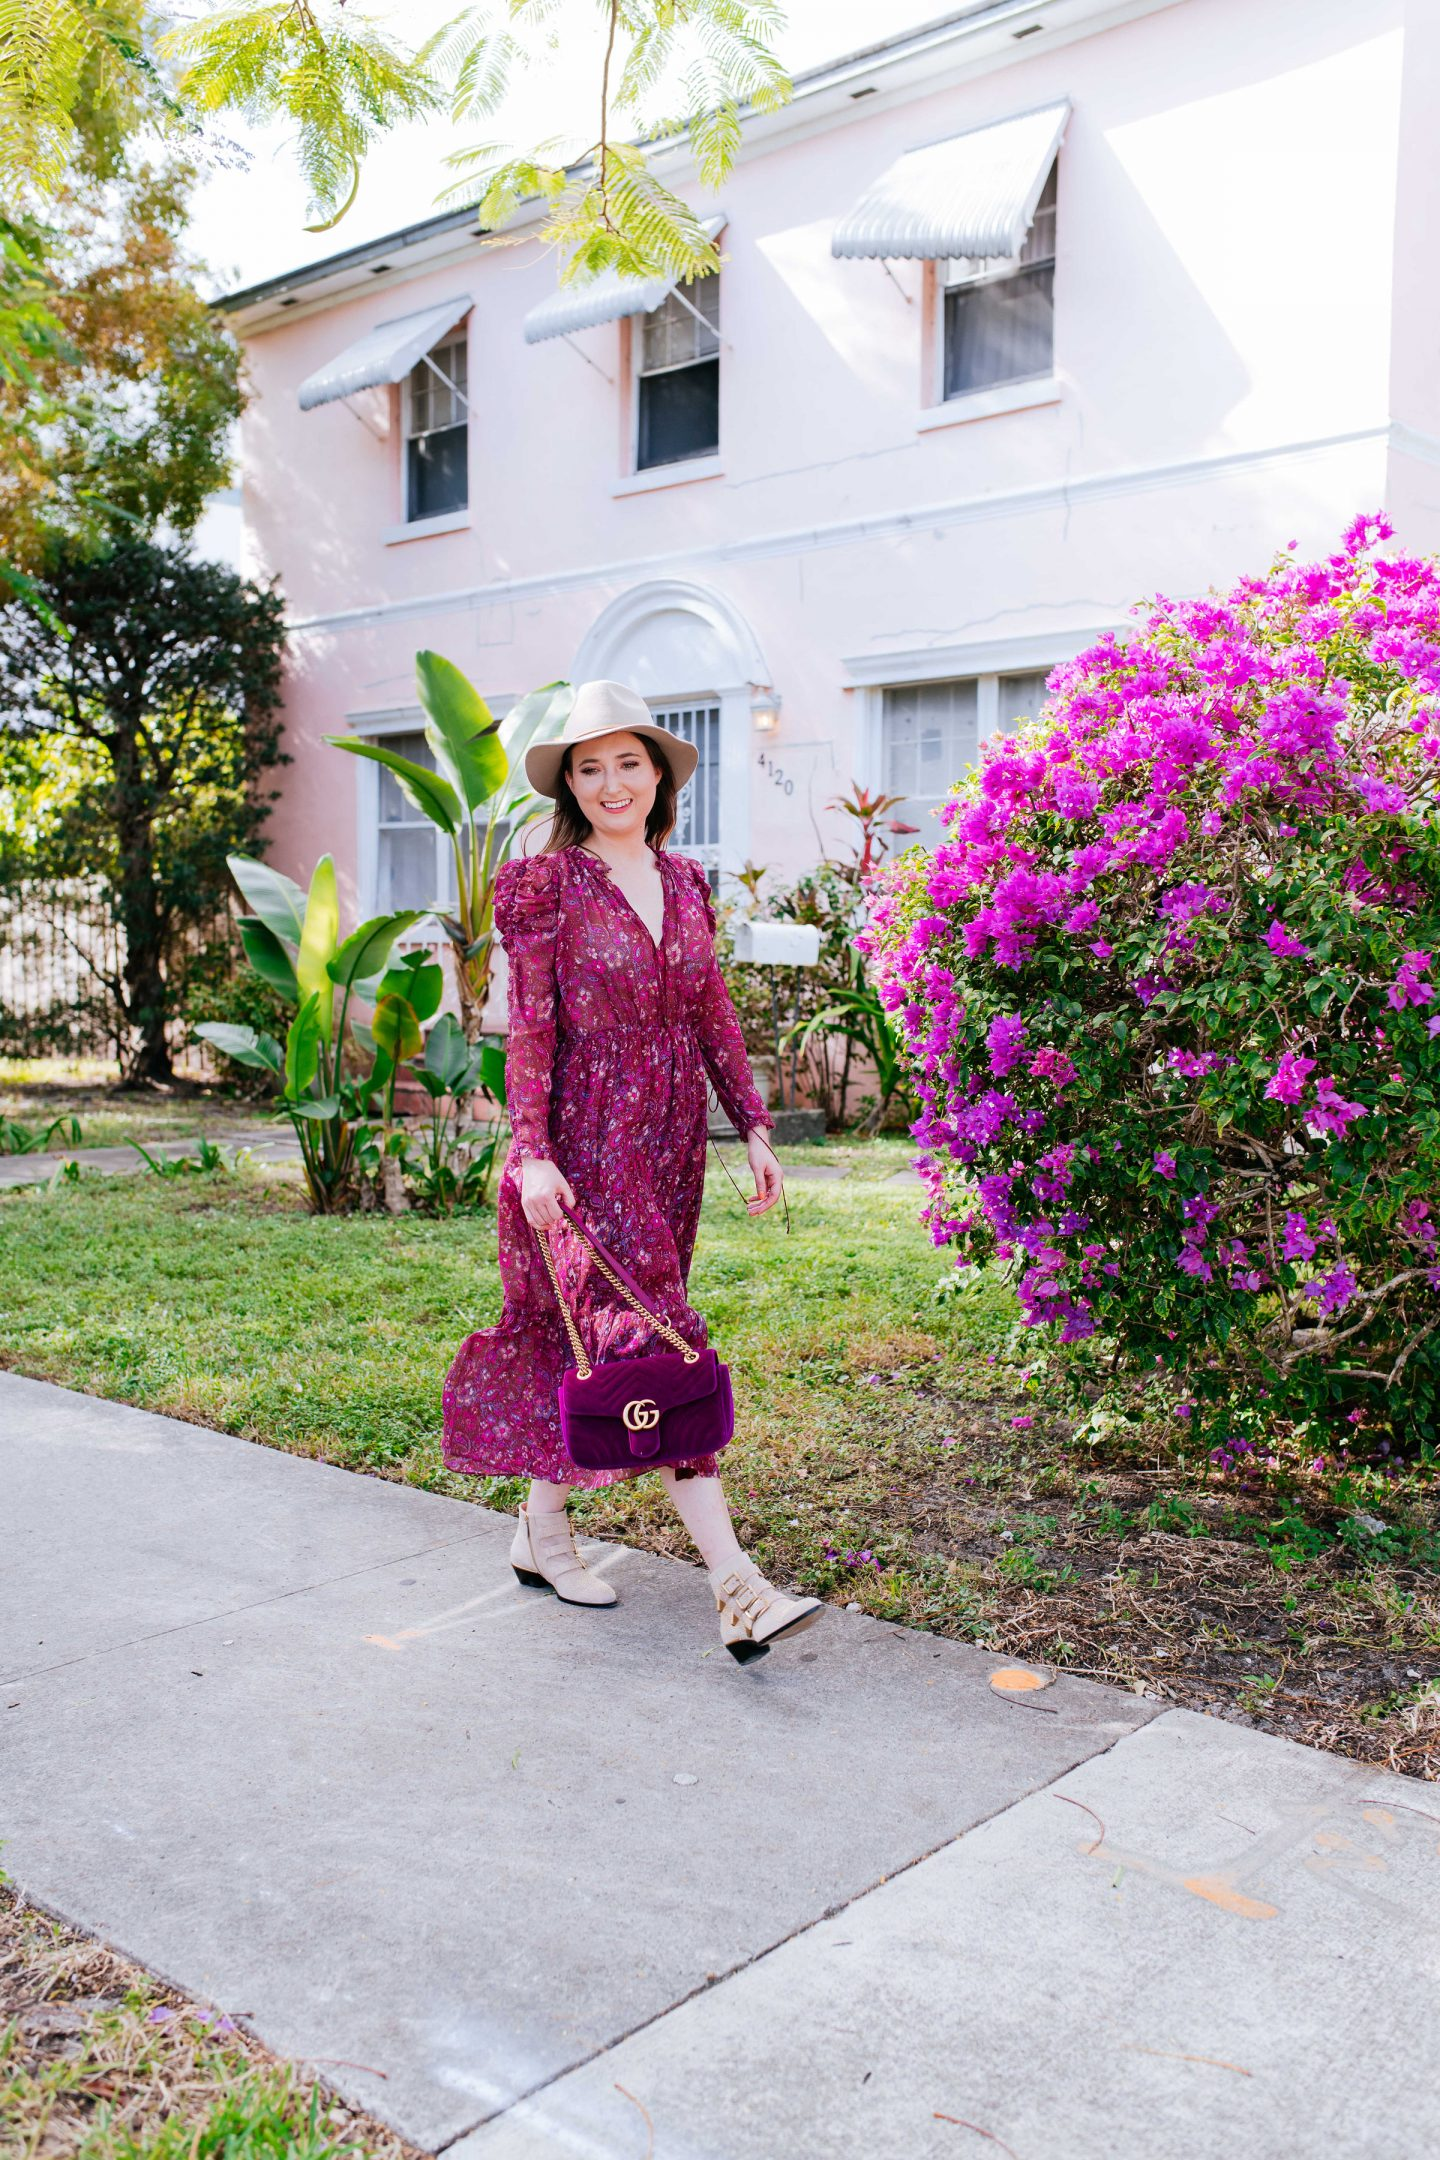 Ulla johnson dress, ulla johnson izar dress, ulla johnson, paisley dress, midi dress, ulla johnson sale, gucci marmont velvet bag, chloe susanna boots, chloe suede boots, chloe susanna suede boots